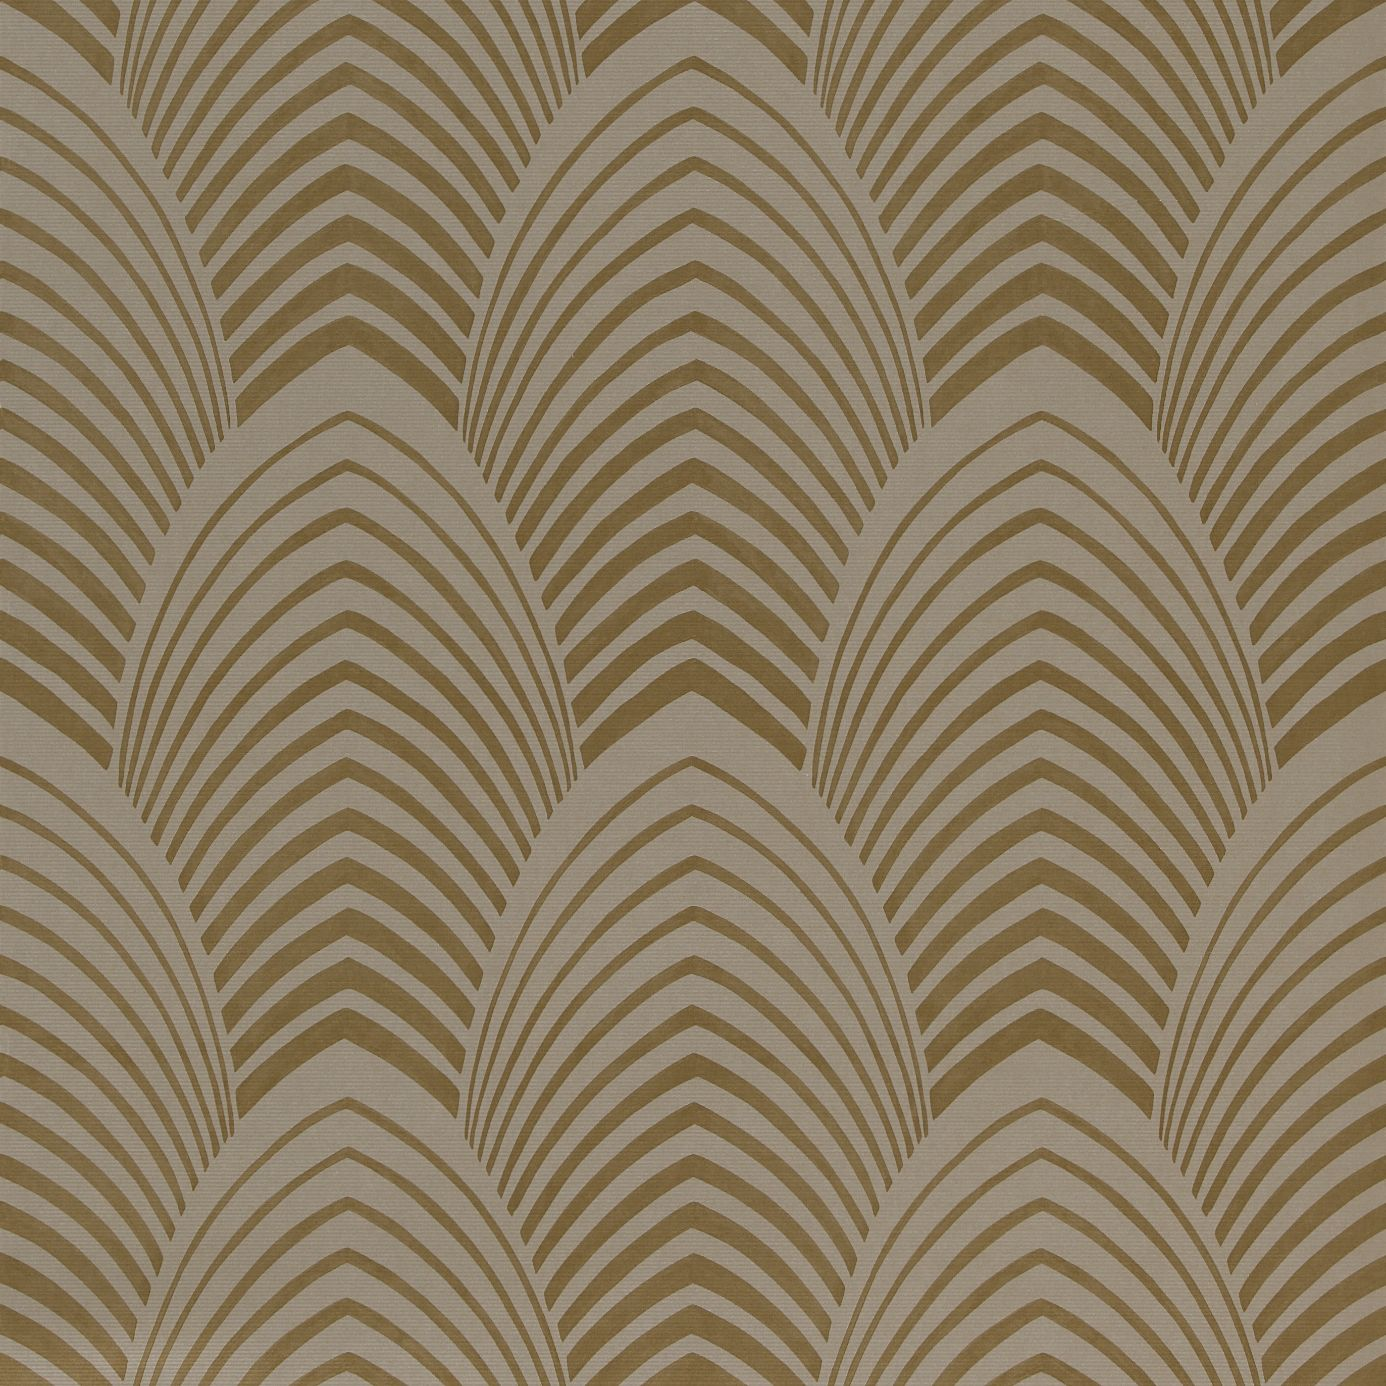 Deco Wallpaper Akrona Collection Harlequin 1386x1386